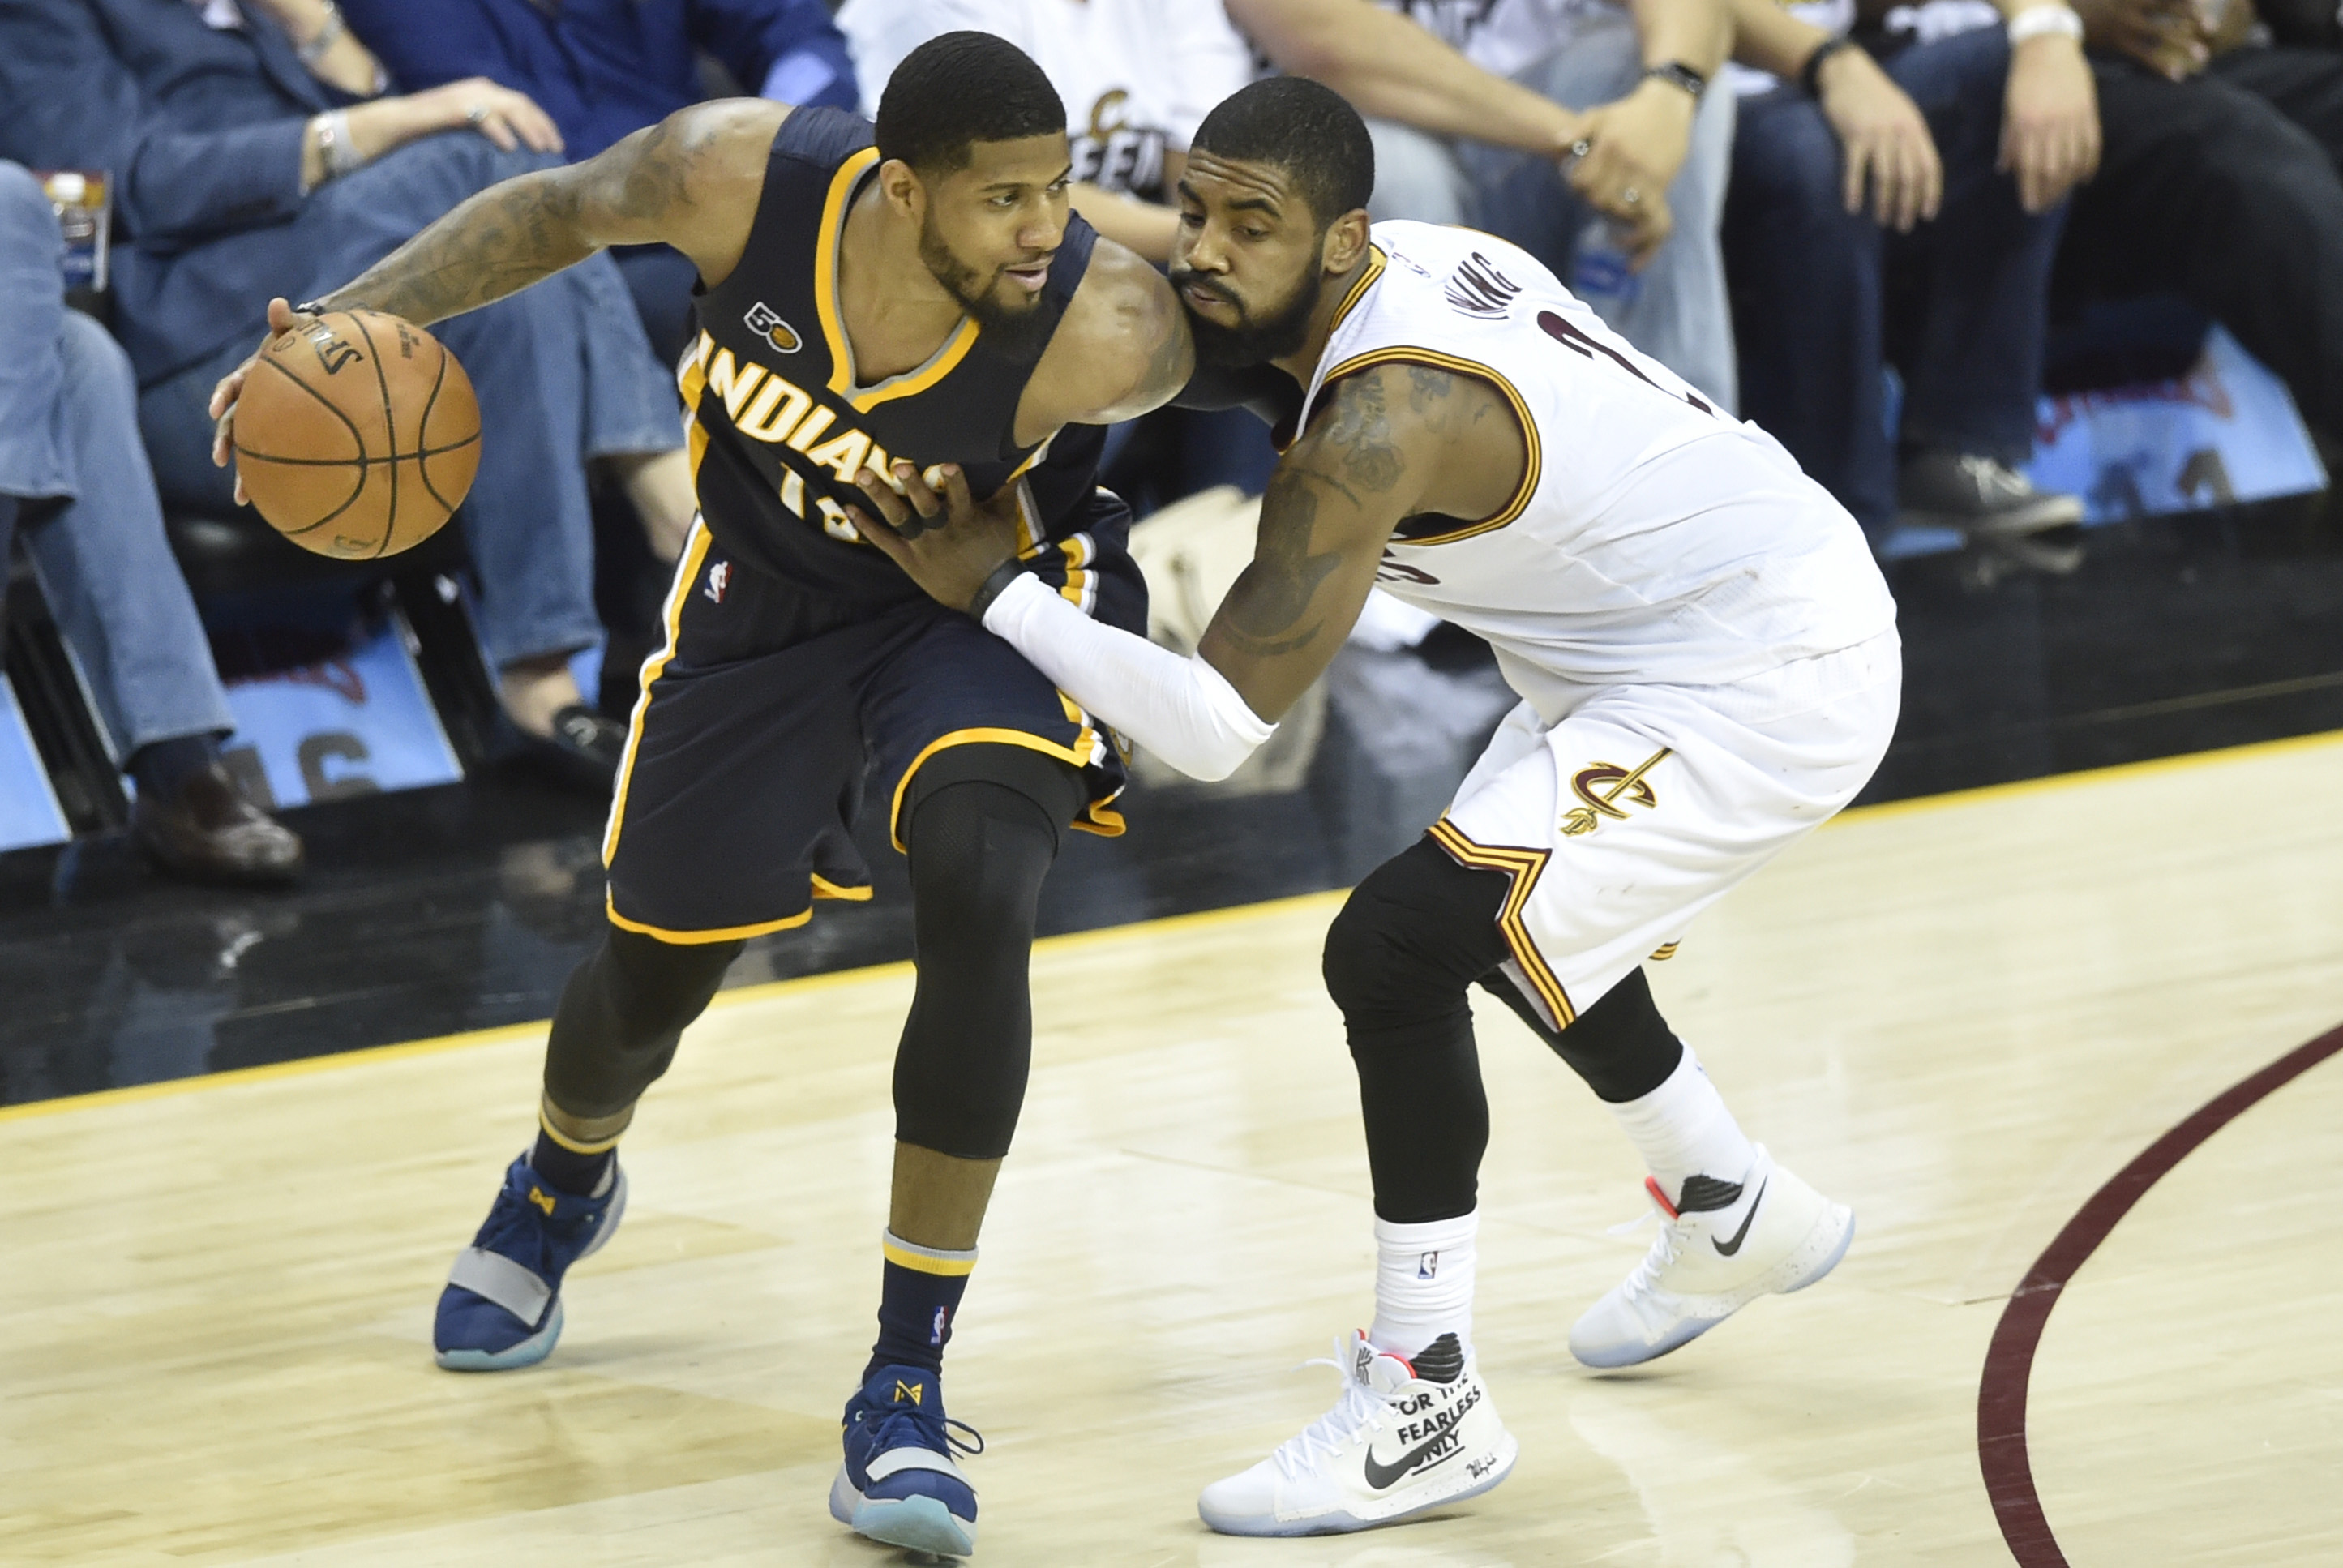 10014256-nba-playoffs-indiana-pacers-at-cleveland-cavaliers